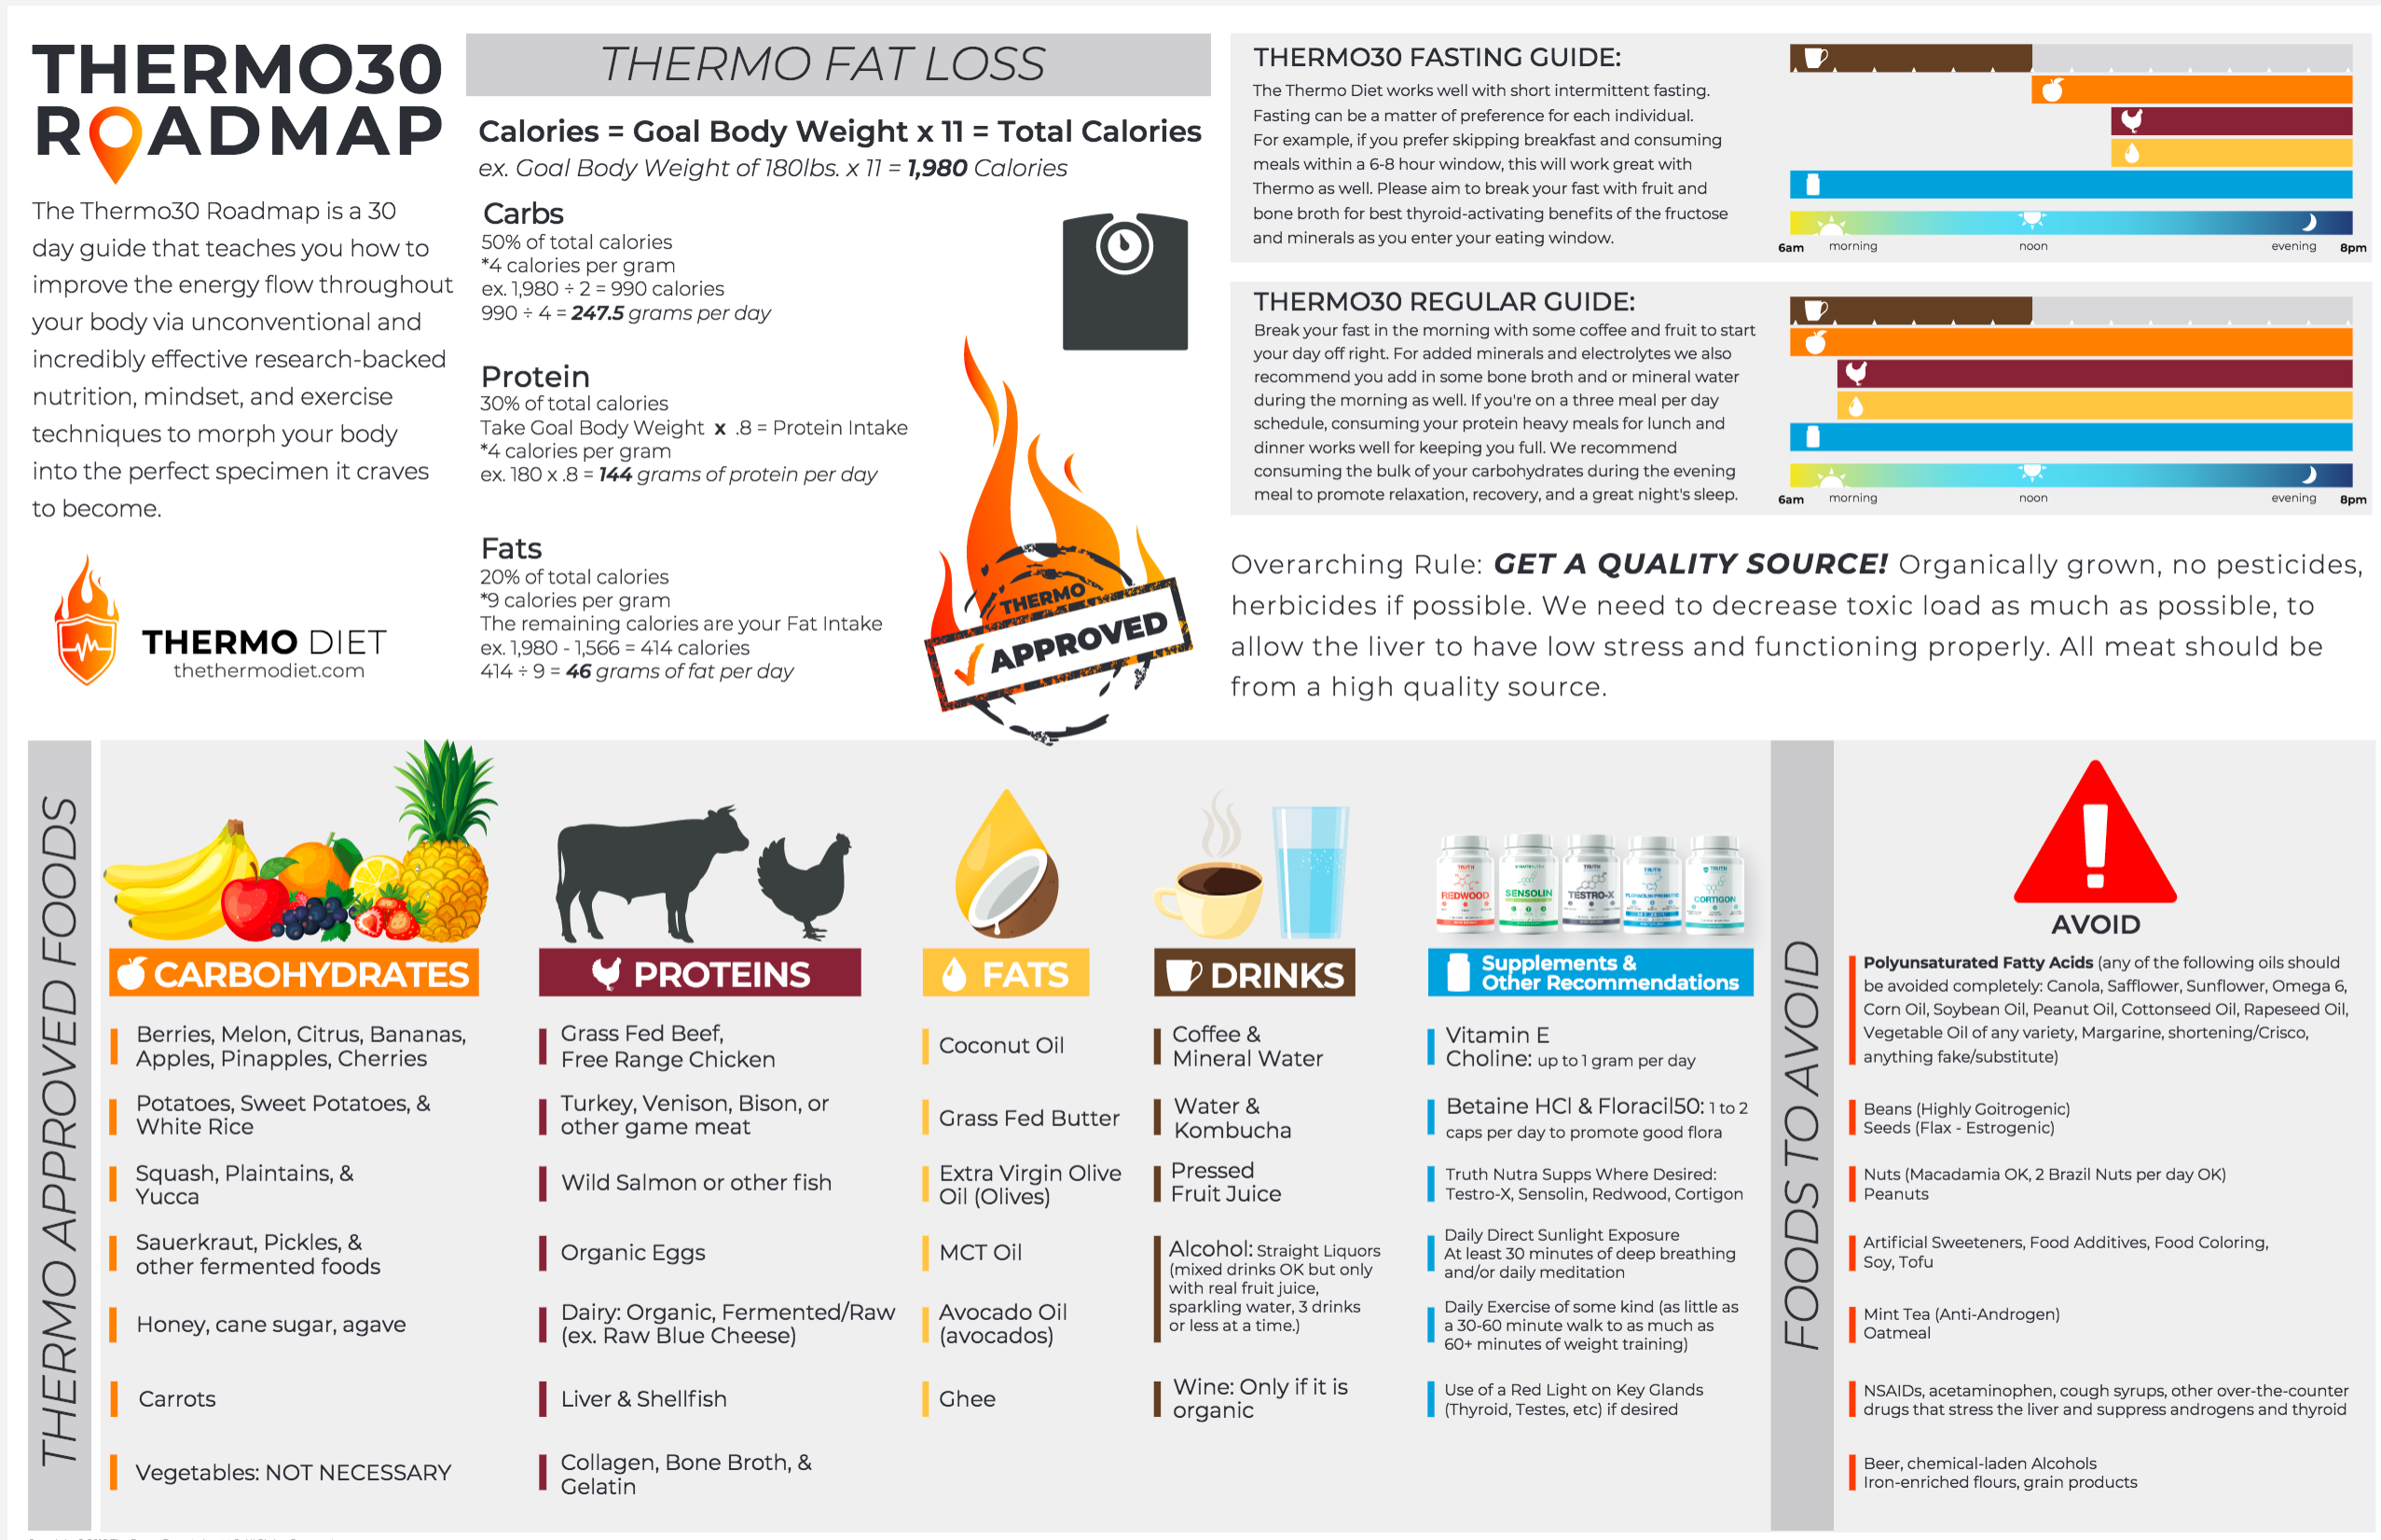 The Thermo Diet Guidelines (Thermo30 Roadmap) - UMZU